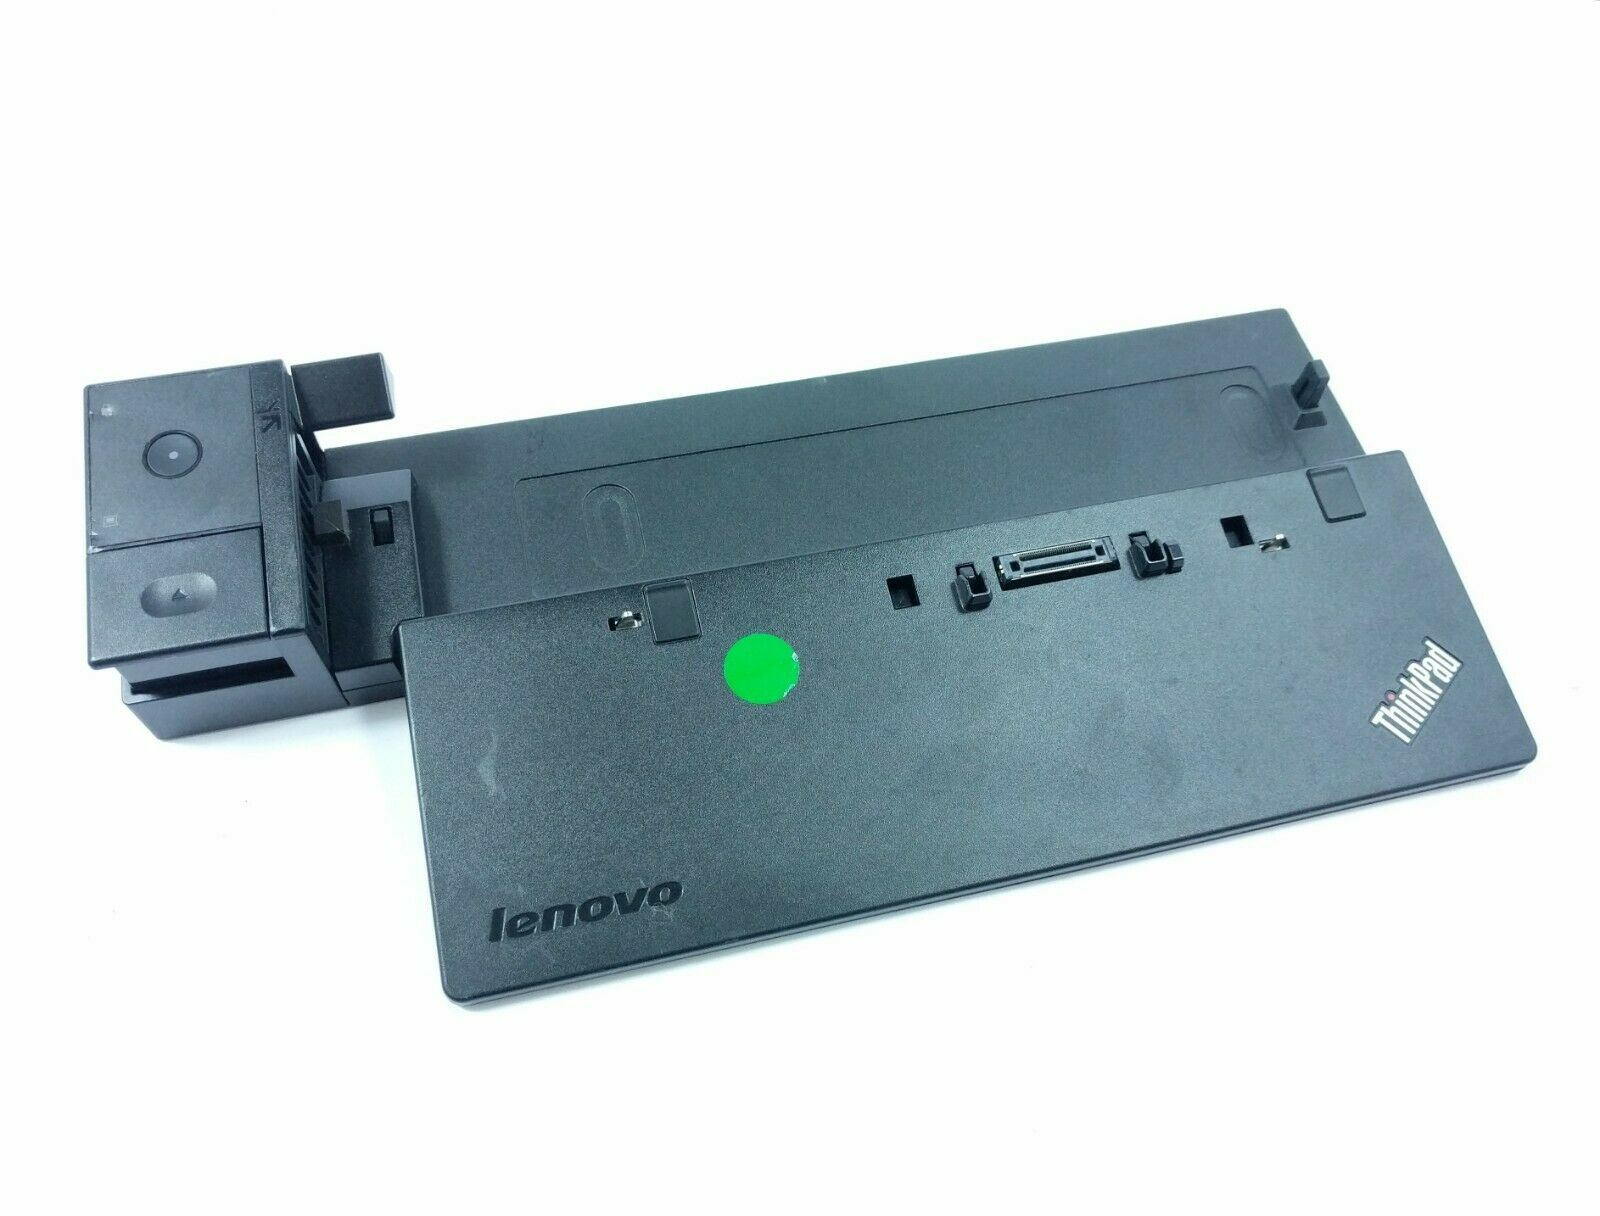 Details about Lenovo 00HM917 Type 40A2 USB 3 ThinkPad Ultra Dock Port  Replicator